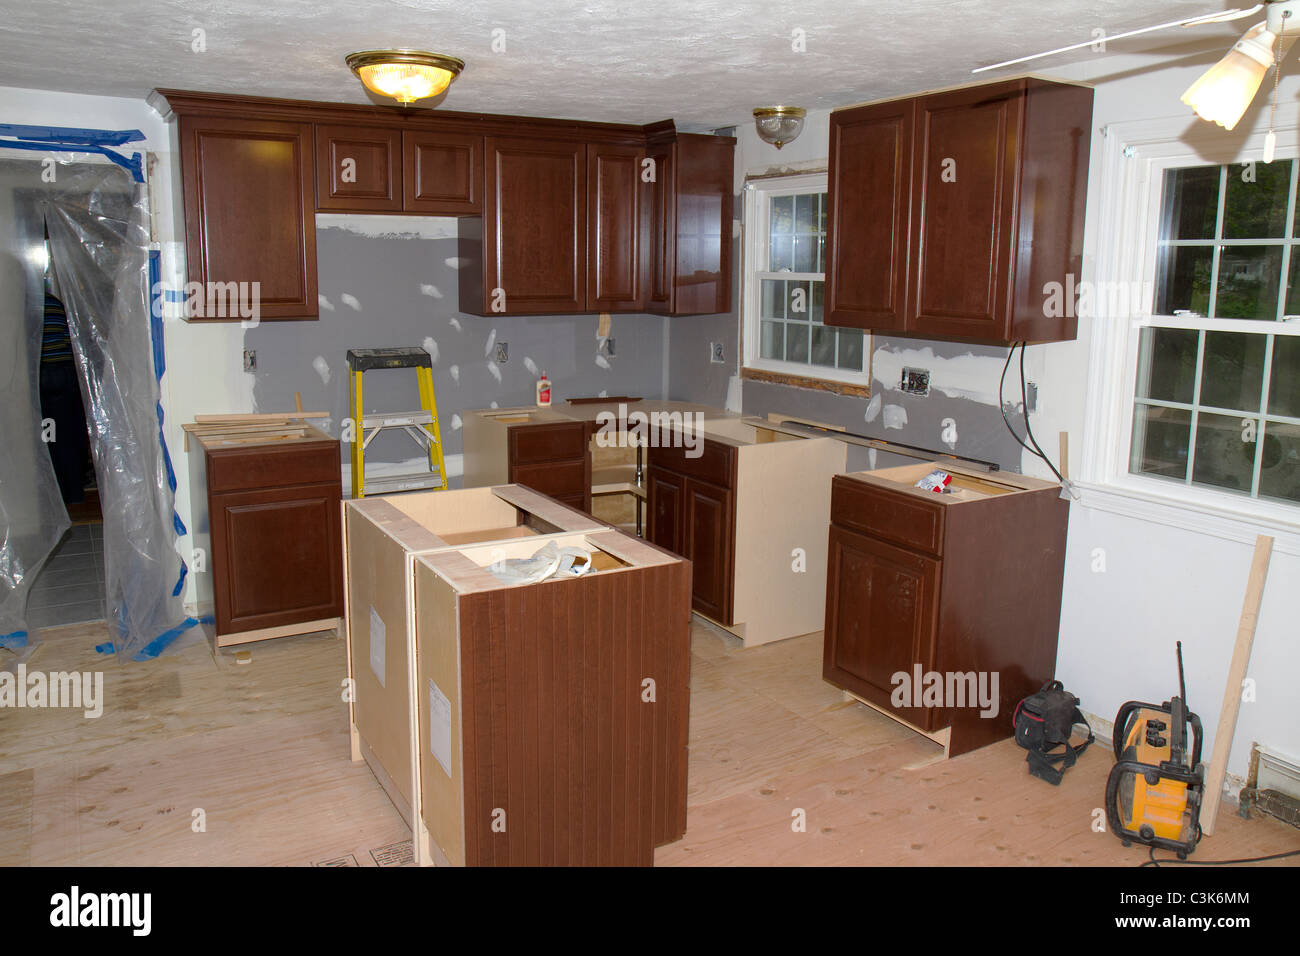 Kitchen Cabinet Refinishing Minneapolis 1960's Style American Home Kitchen During Remodeling. New